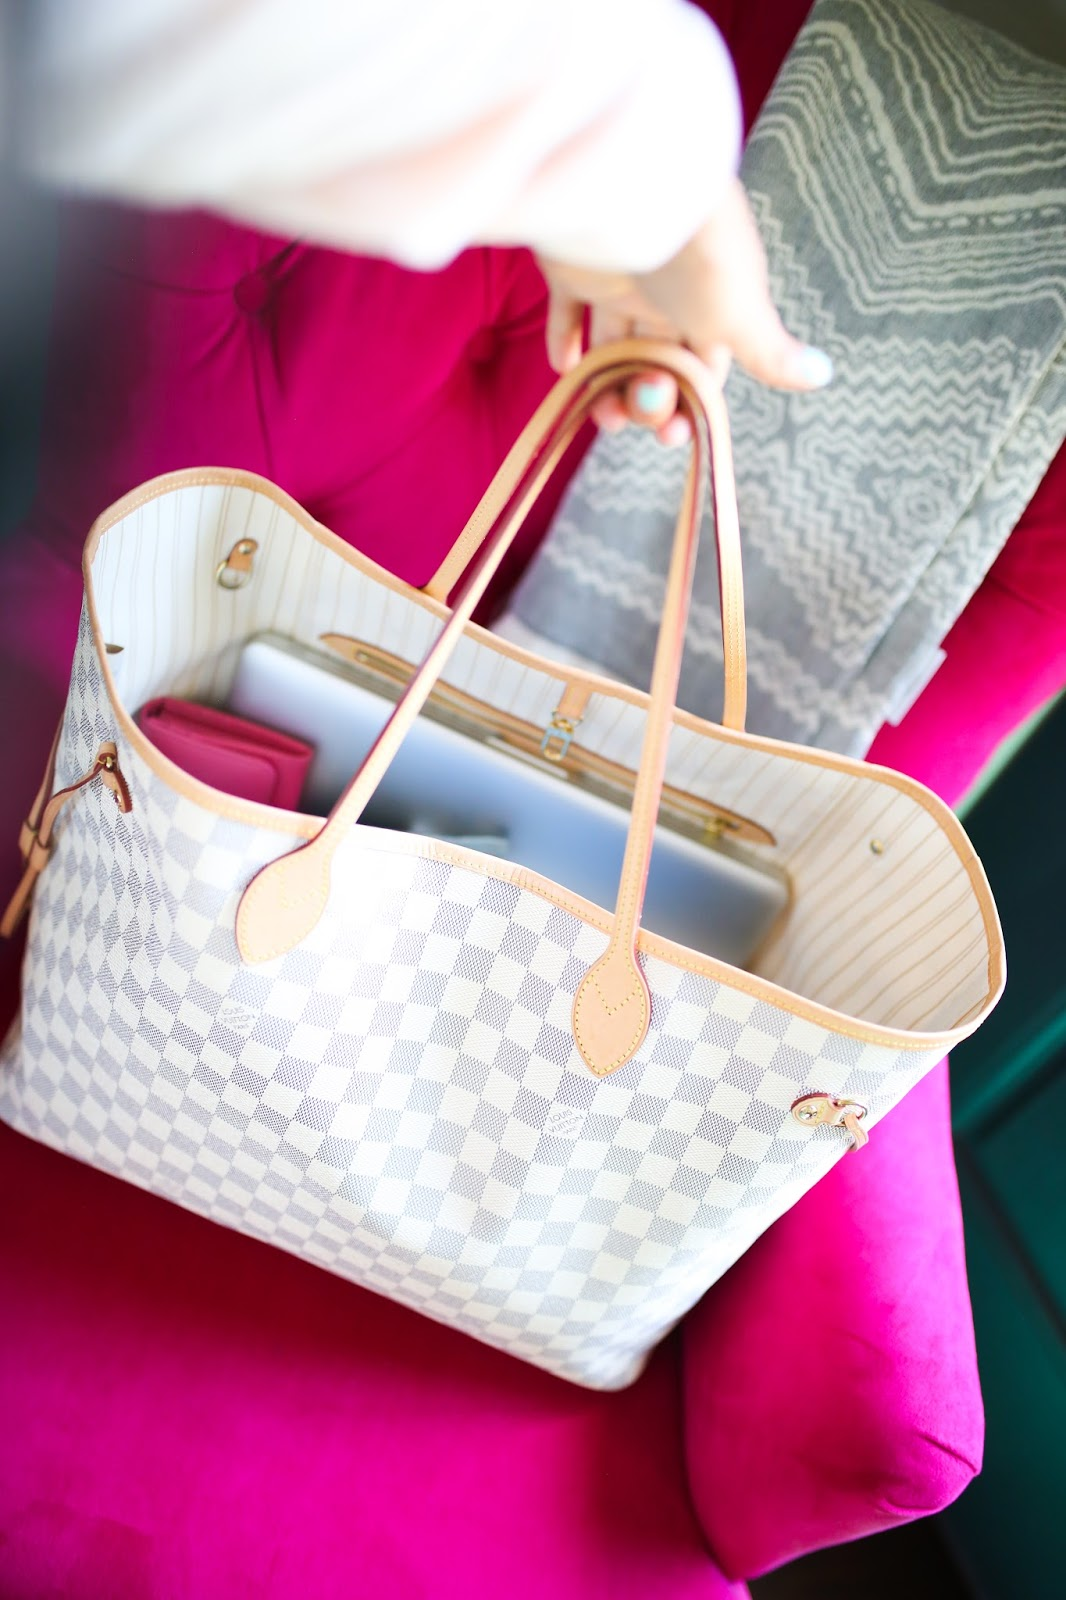 LV Neverfull vs Goyard Comparison and review featured by top US fashion blogger, Emily Gemma of The Sweetest Thing: Emily Gemma blog, The Sweetest Thing Blog, Louis Vuitton Neverfull GM Damier Azur bag review, Neverfull MM Damier Ebene bag review, Goyard St. Louis Chevron Tote Black PM bag review, comparison of Neverfull sizes GM MM and PM, difference between louis vuitton neverfull GM and MM and PM, what size louis vuitton nevefull is best, louis vuitton neverfull as diaper bag, what all fits into a goyard tote, what all fits into the medium louis vuitton Neverfull MM, pinterest handbags louis vuitton goyard review, Rag & Bone white wool hat, Emily griffin first comes love, white marble skin for iPad, leopard print tassel keychain, providence story tassel keychain, pink prada bow wallet, can I fit my macbook pro into a neverfull